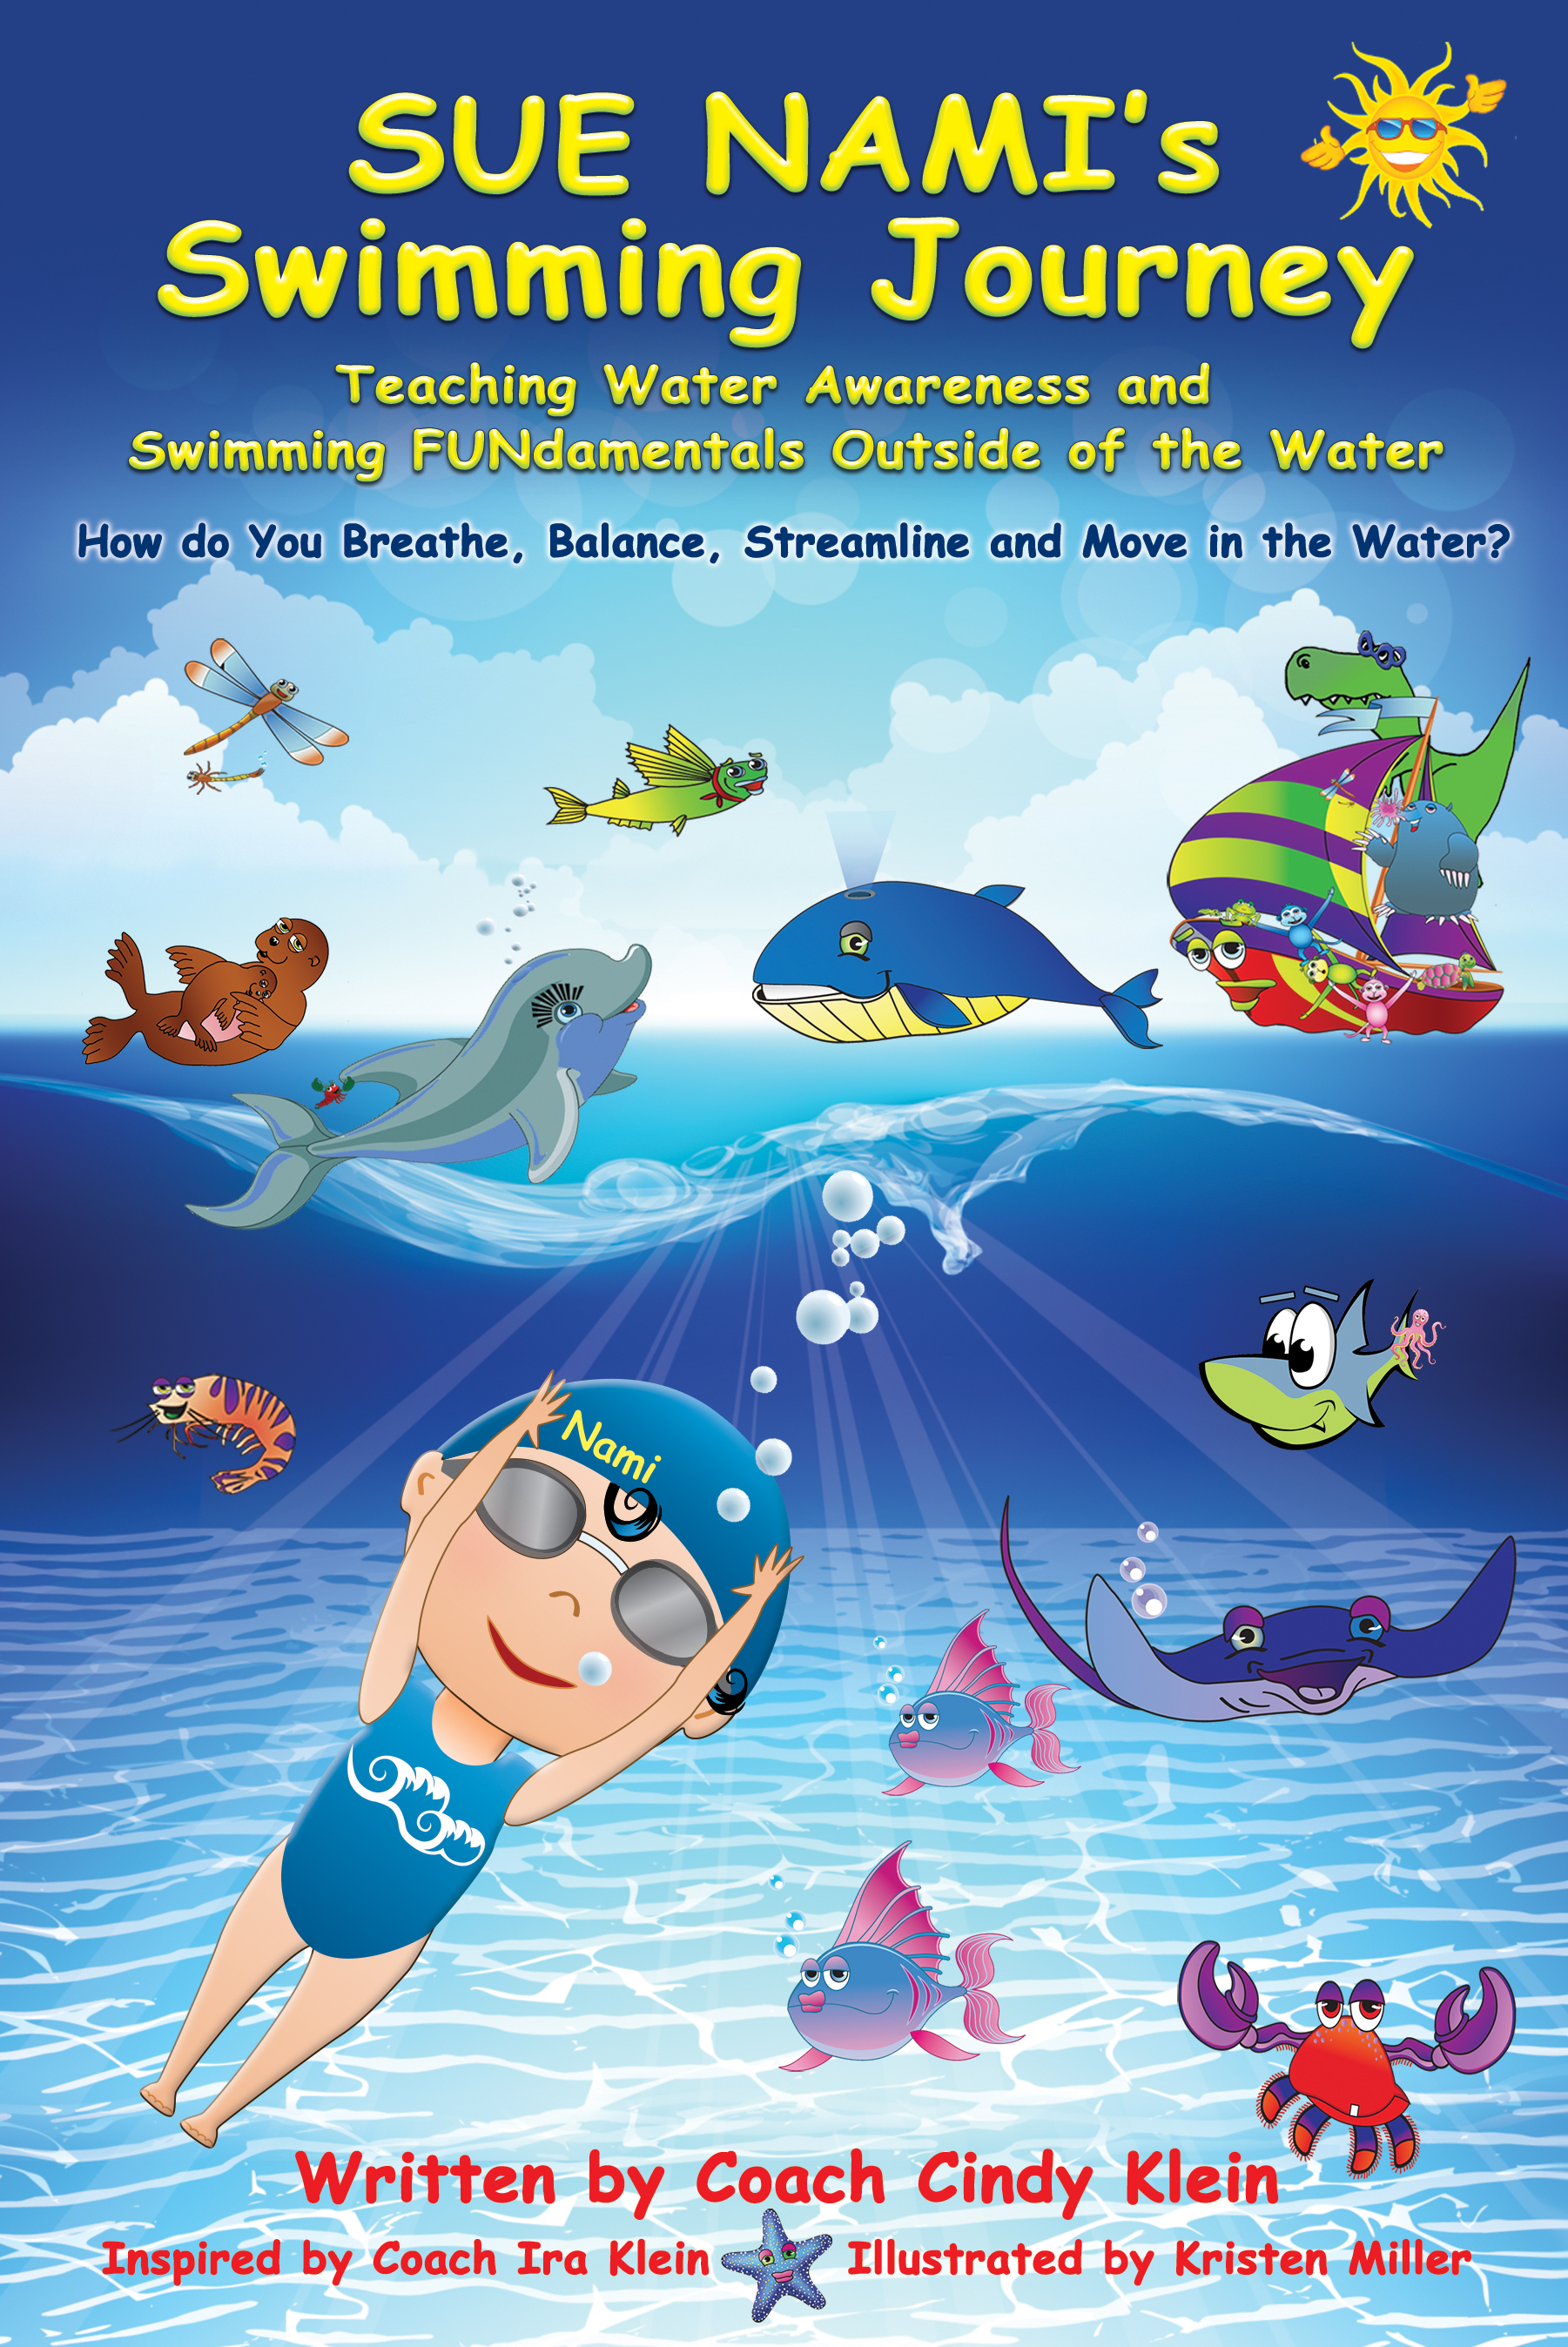 """Sue Nami's Swimming Journey"" the BOOK"